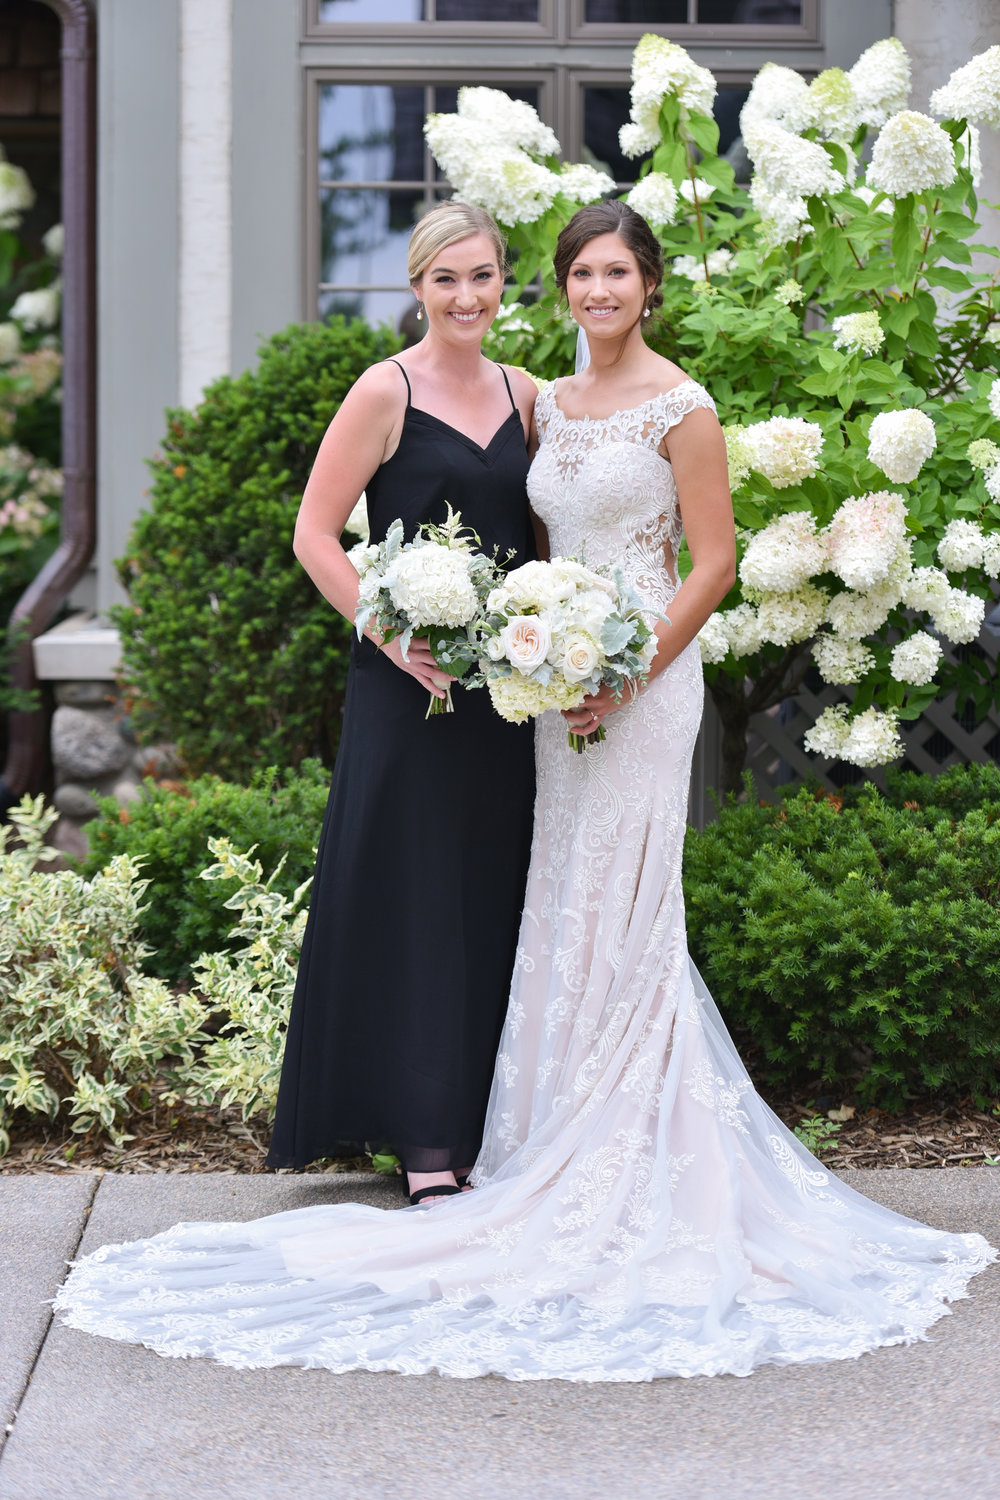 Here is one of the Flower Girls, Hailey, with the beautiful bride Mary. They grew up playing golf together, and their families are friends.